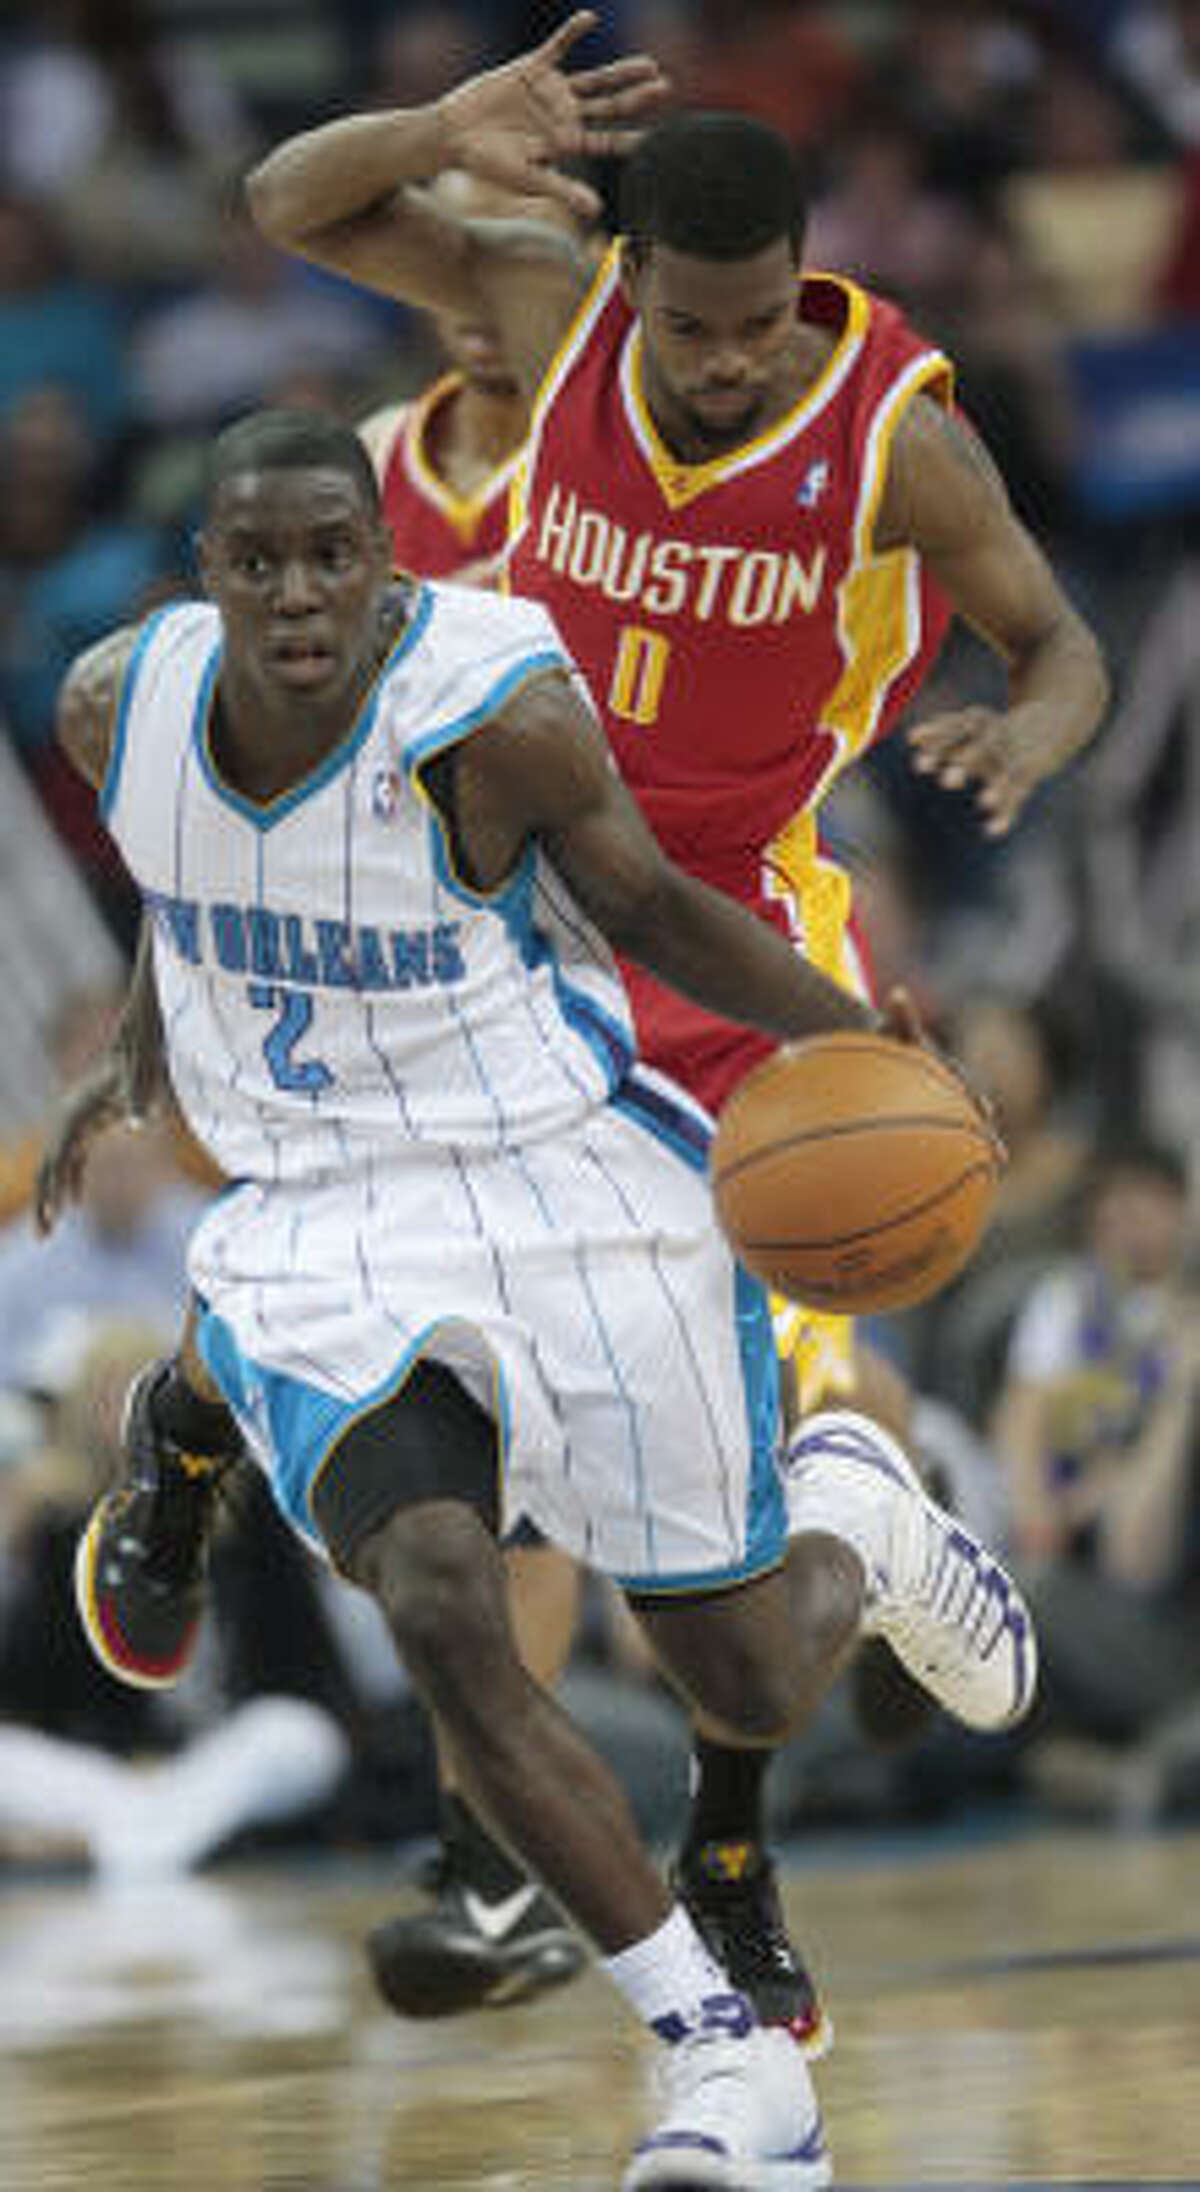 New Orleans Hornets guard Darren Collison leads a fast break as guard Aaron Brooks jumps out of the way.